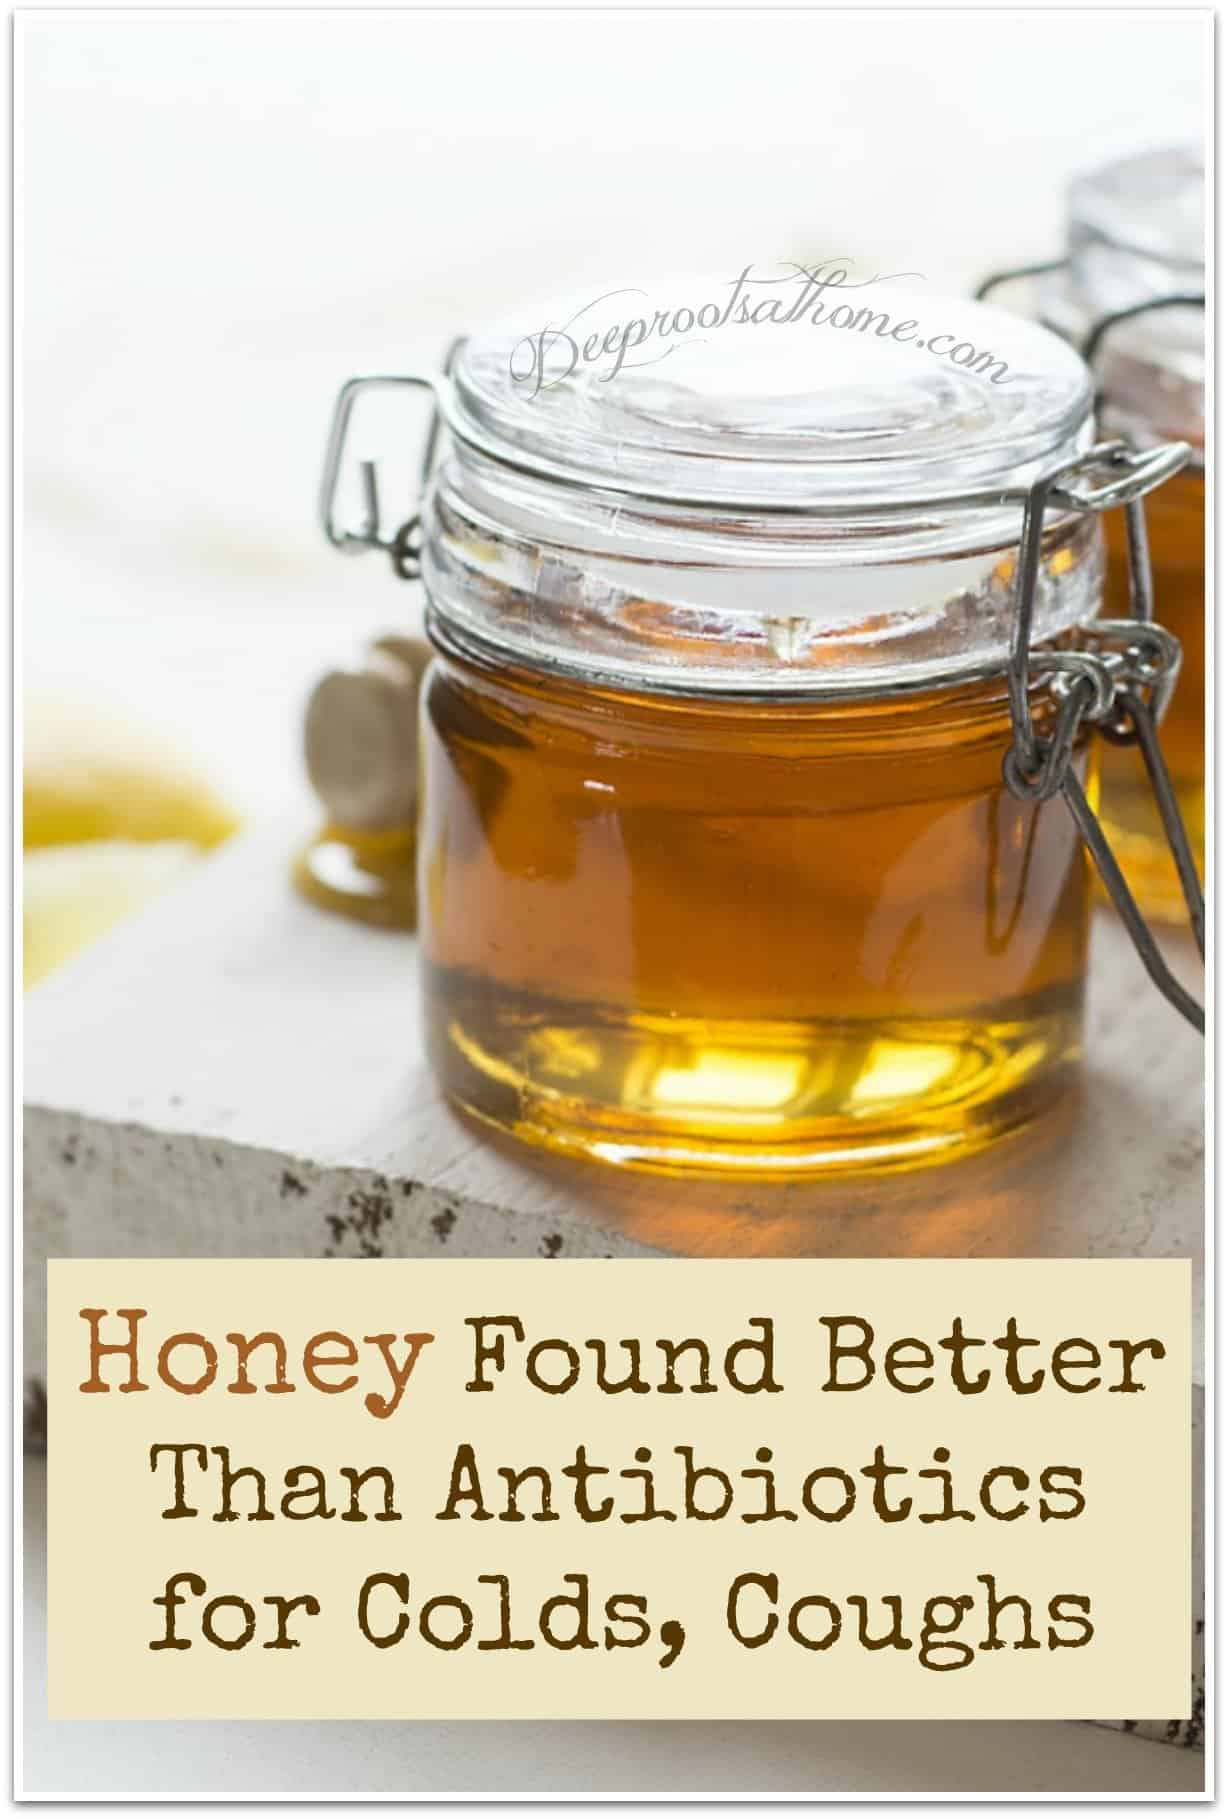 Honey Found Better Than Antibiotics for Colds, Coughs. jar